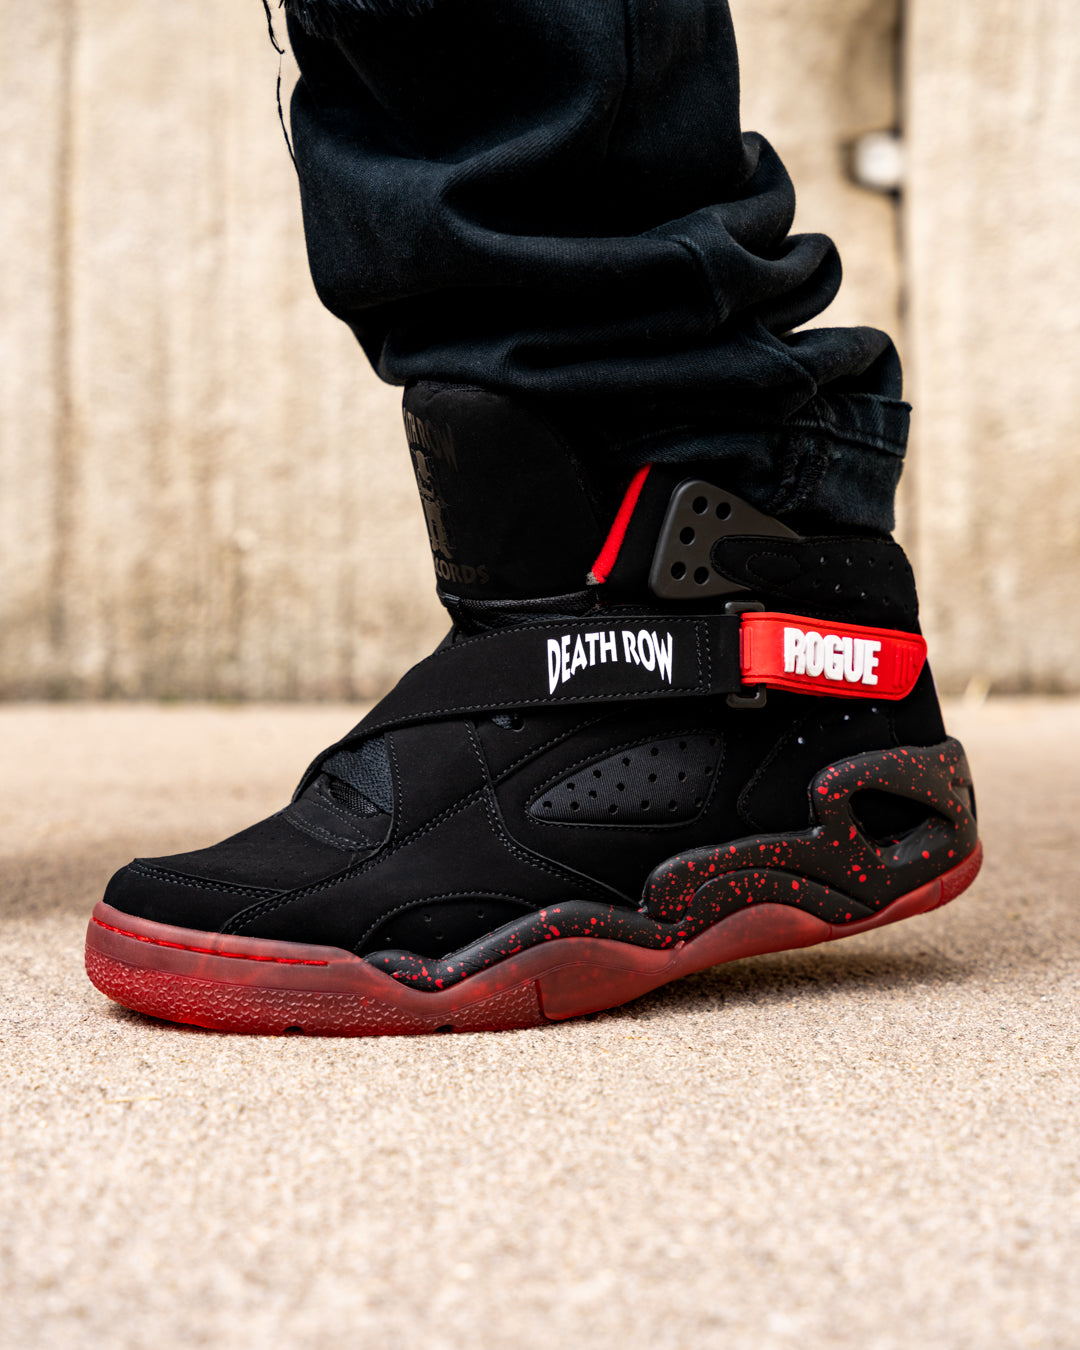 ROGUE x DEATH ROW RECORDS Black/Red